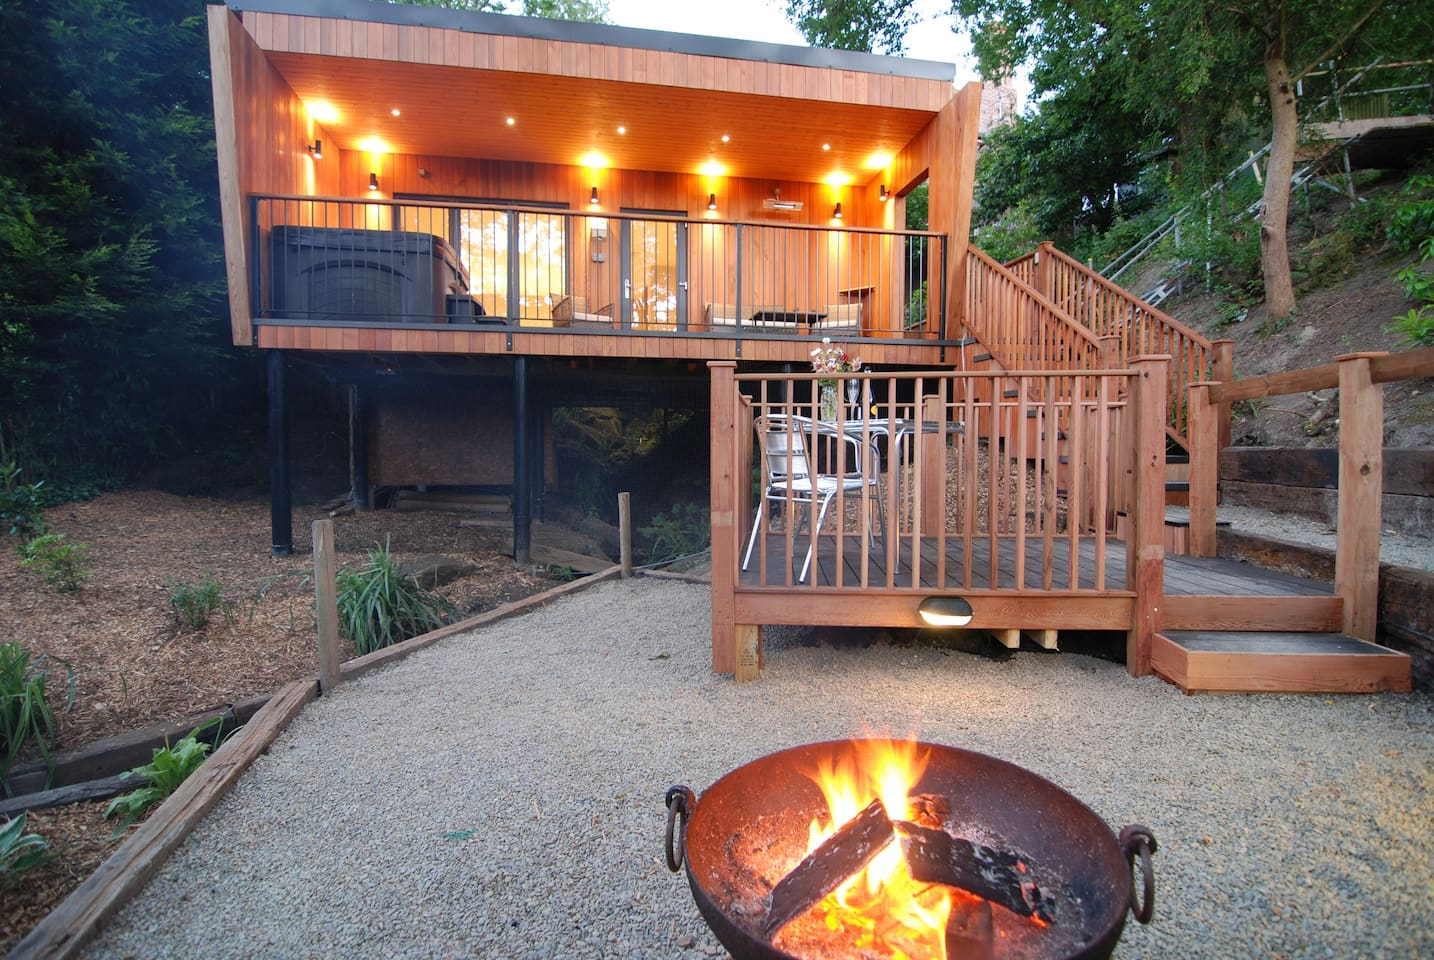 The up/down lights accentuate the red cedar cladding.